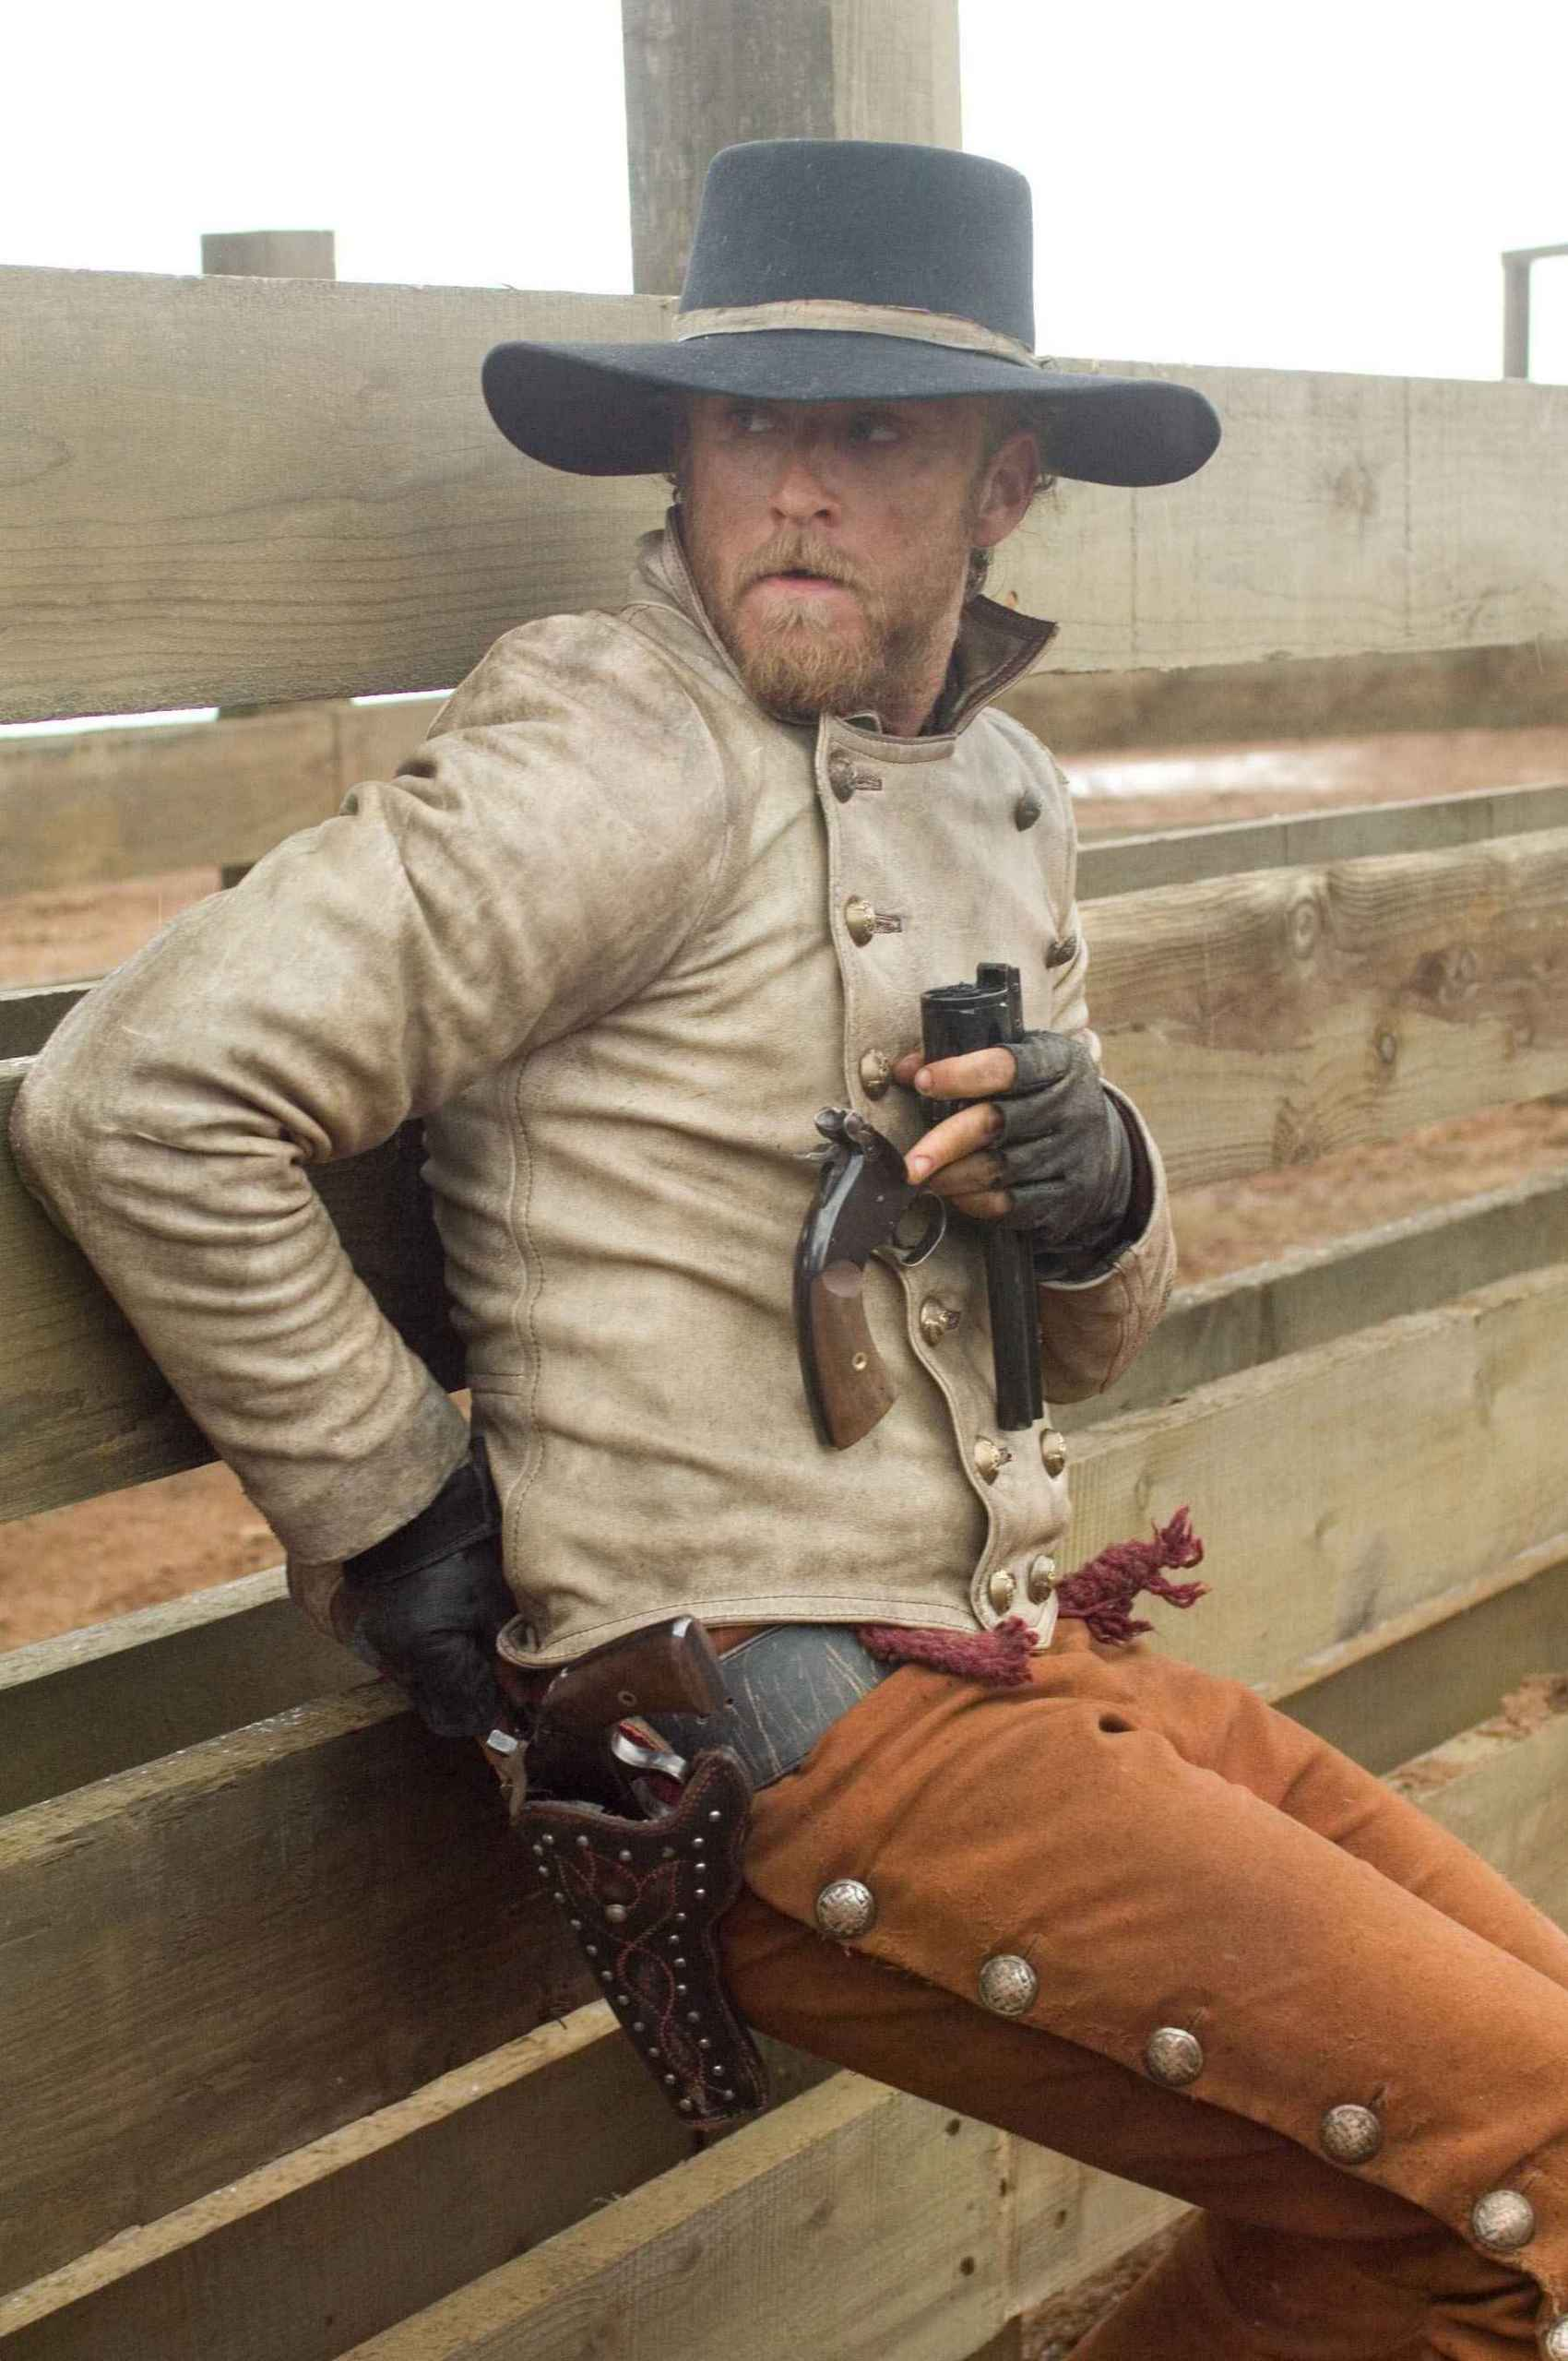 Ben foster as charlie prince 3 10 to yuma 18071962 1700 2560 jpg